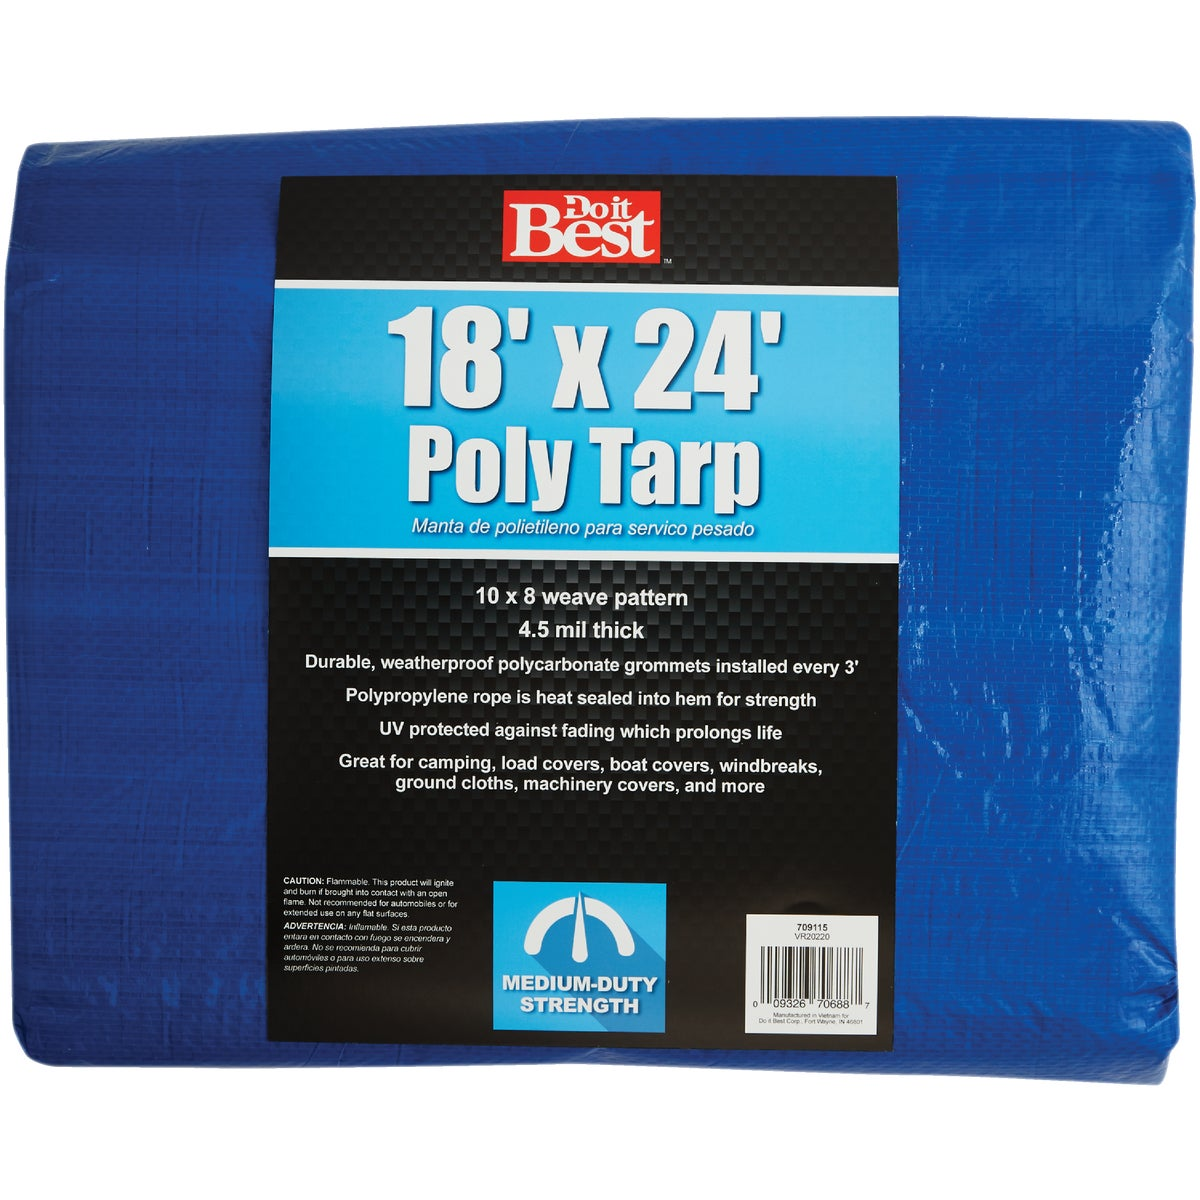 18X24 BLUE MED DUTY TARP - 709115 by Do it Best